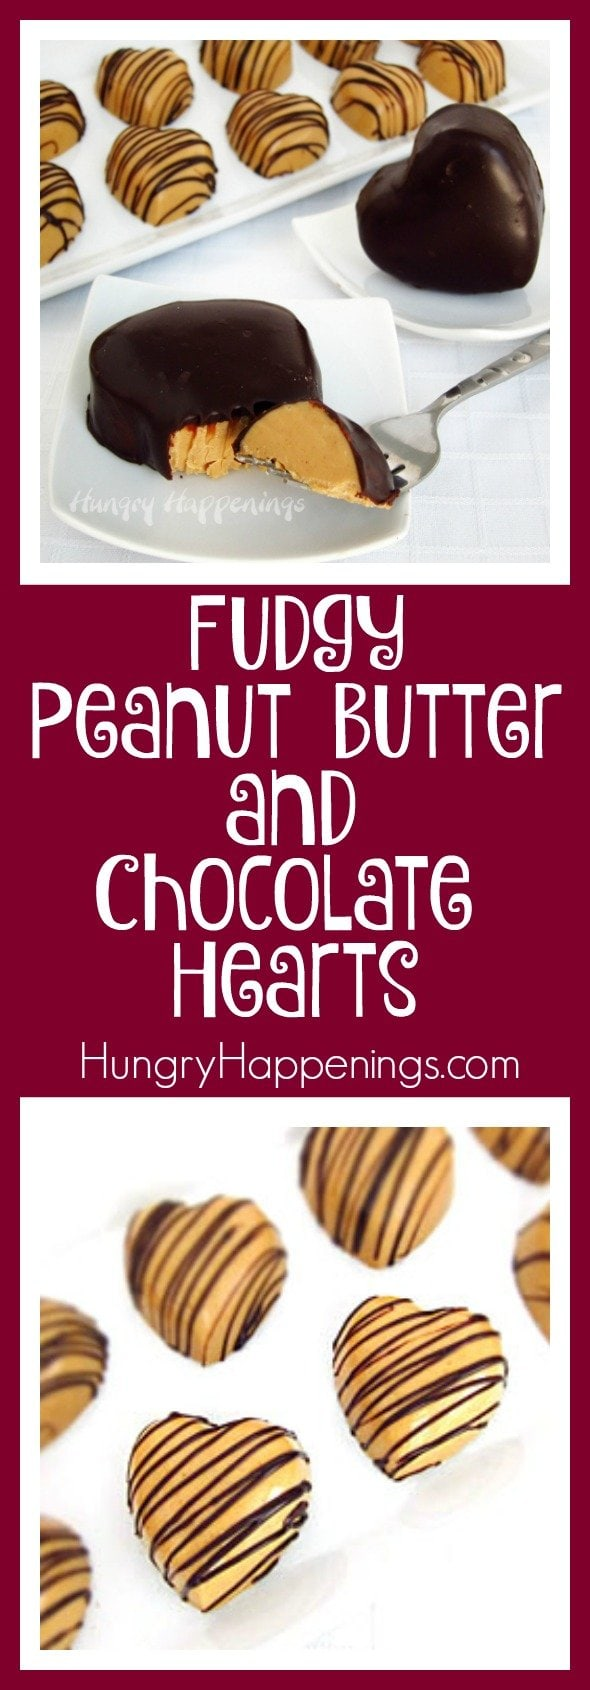 chocolate dipped peanut butter fudge hearts and chocolate drizzled peanut butter fudge hearts